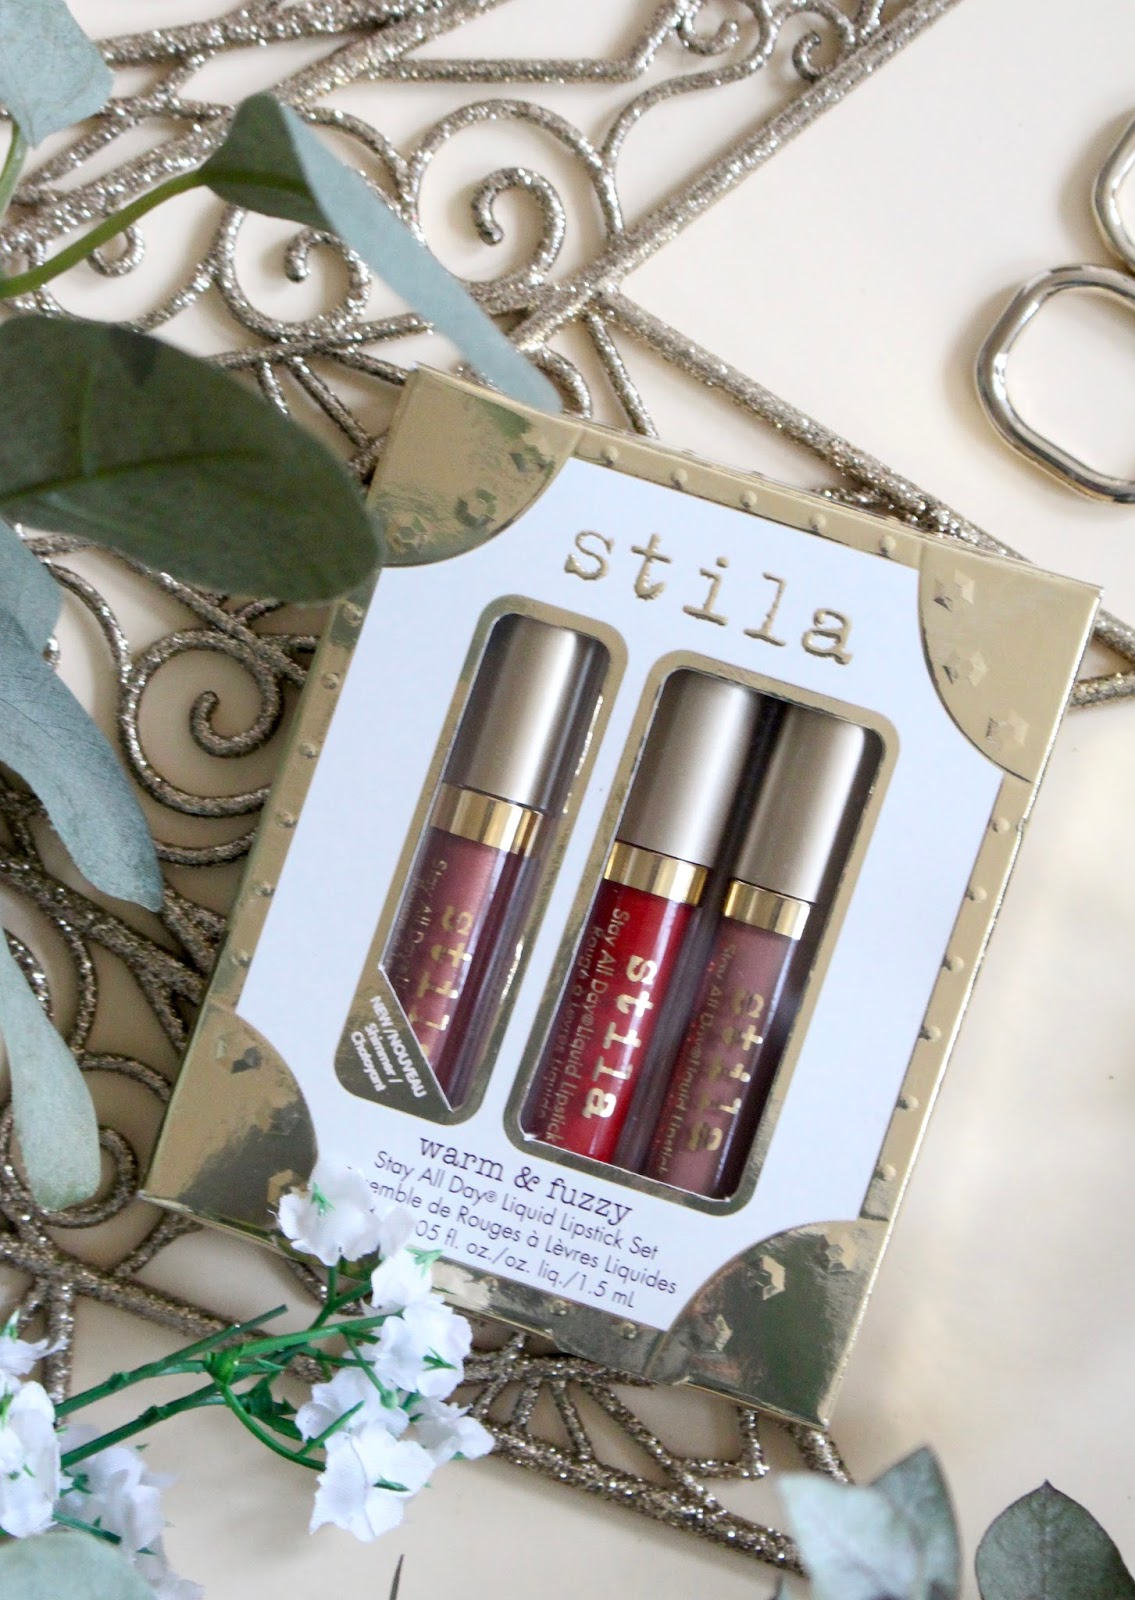 Stila warm and fuzzy gift set